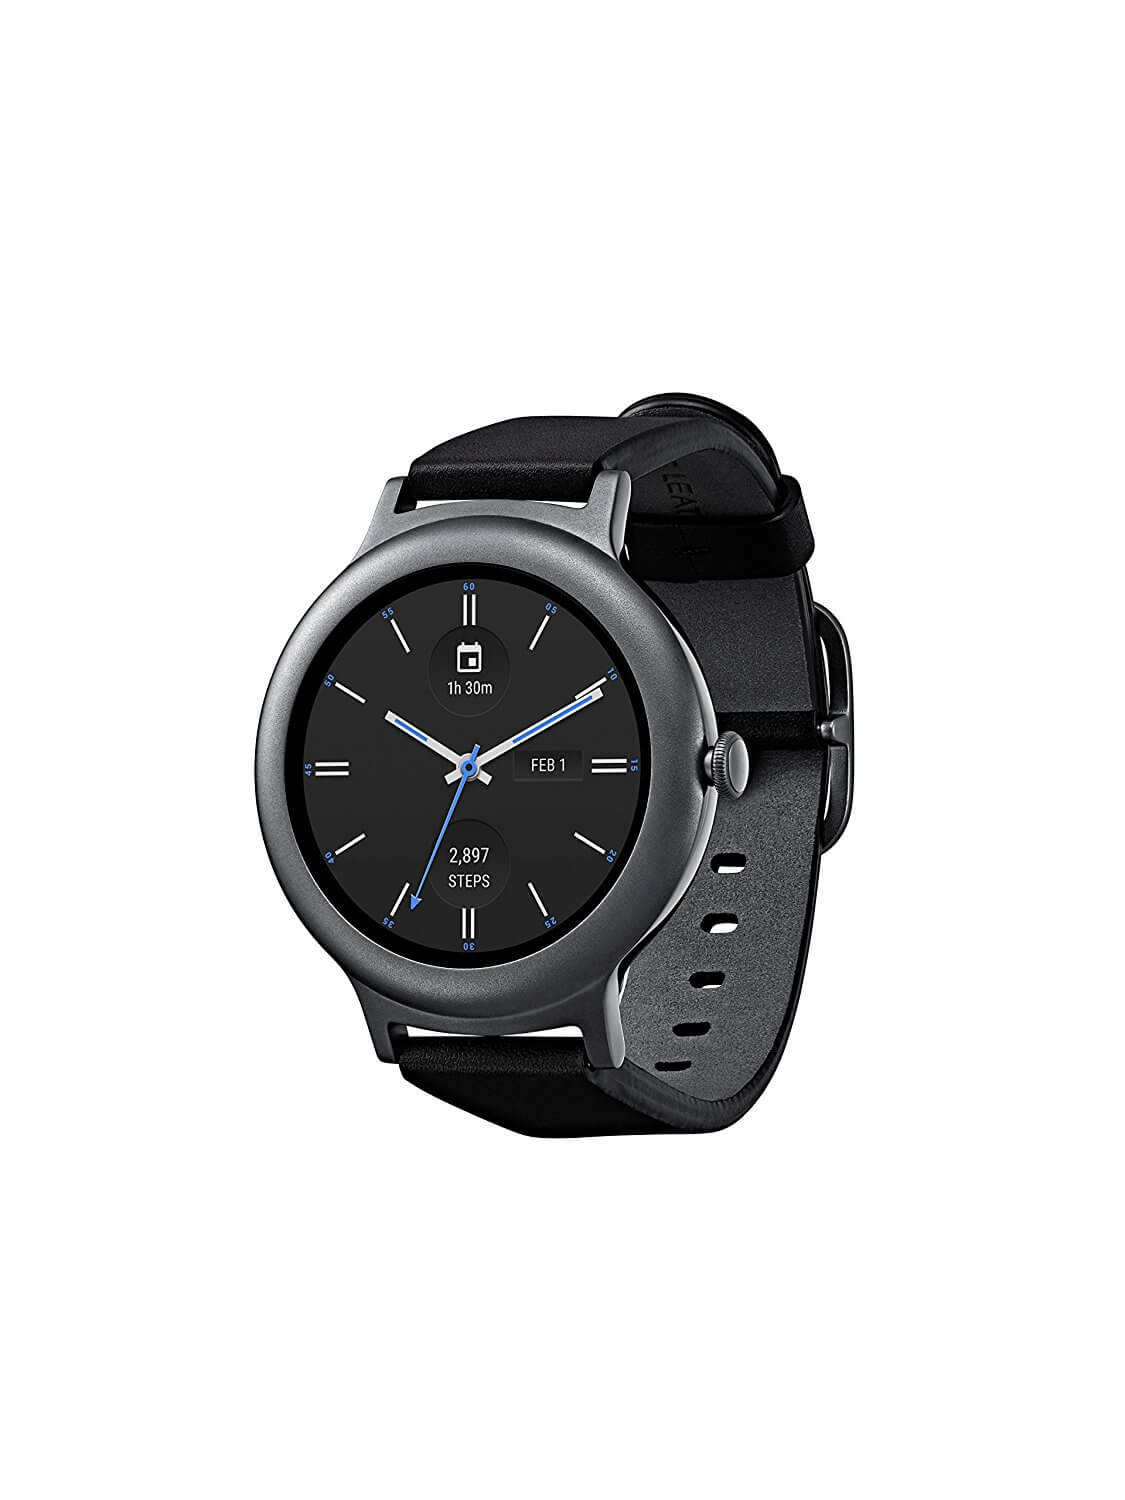 LG Watch Style – What to expect?